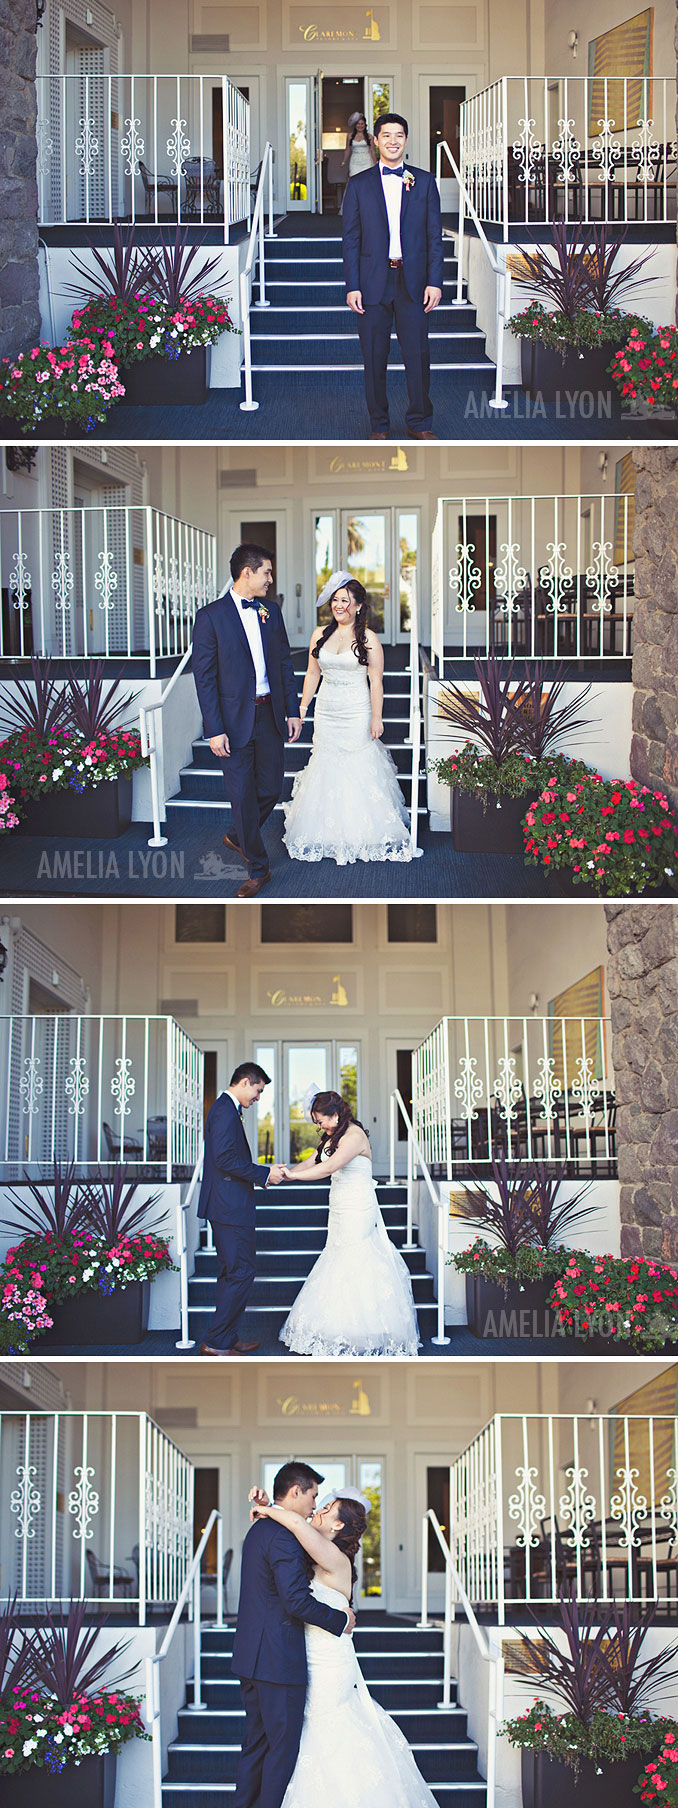 dd_bay_area_claremont_hotel_wedding_amelialyon_0009.jpg